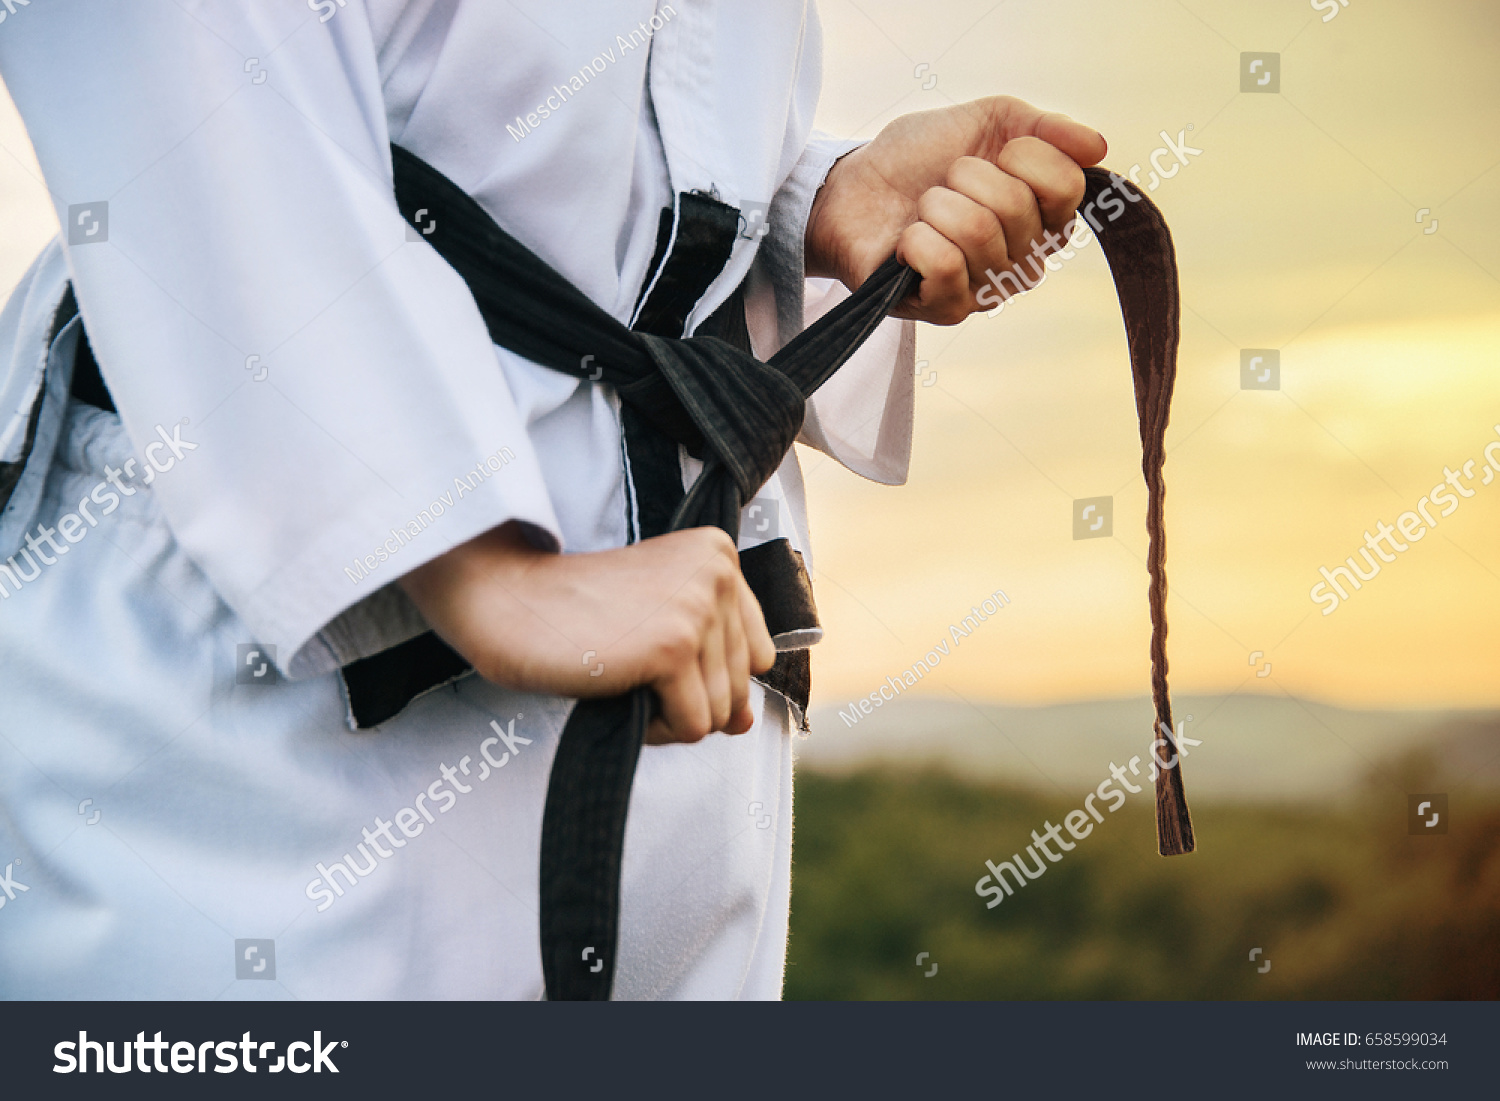 A young martial arts master knots a black belt. Close-up. Image with the effect of sunlight. #658599034